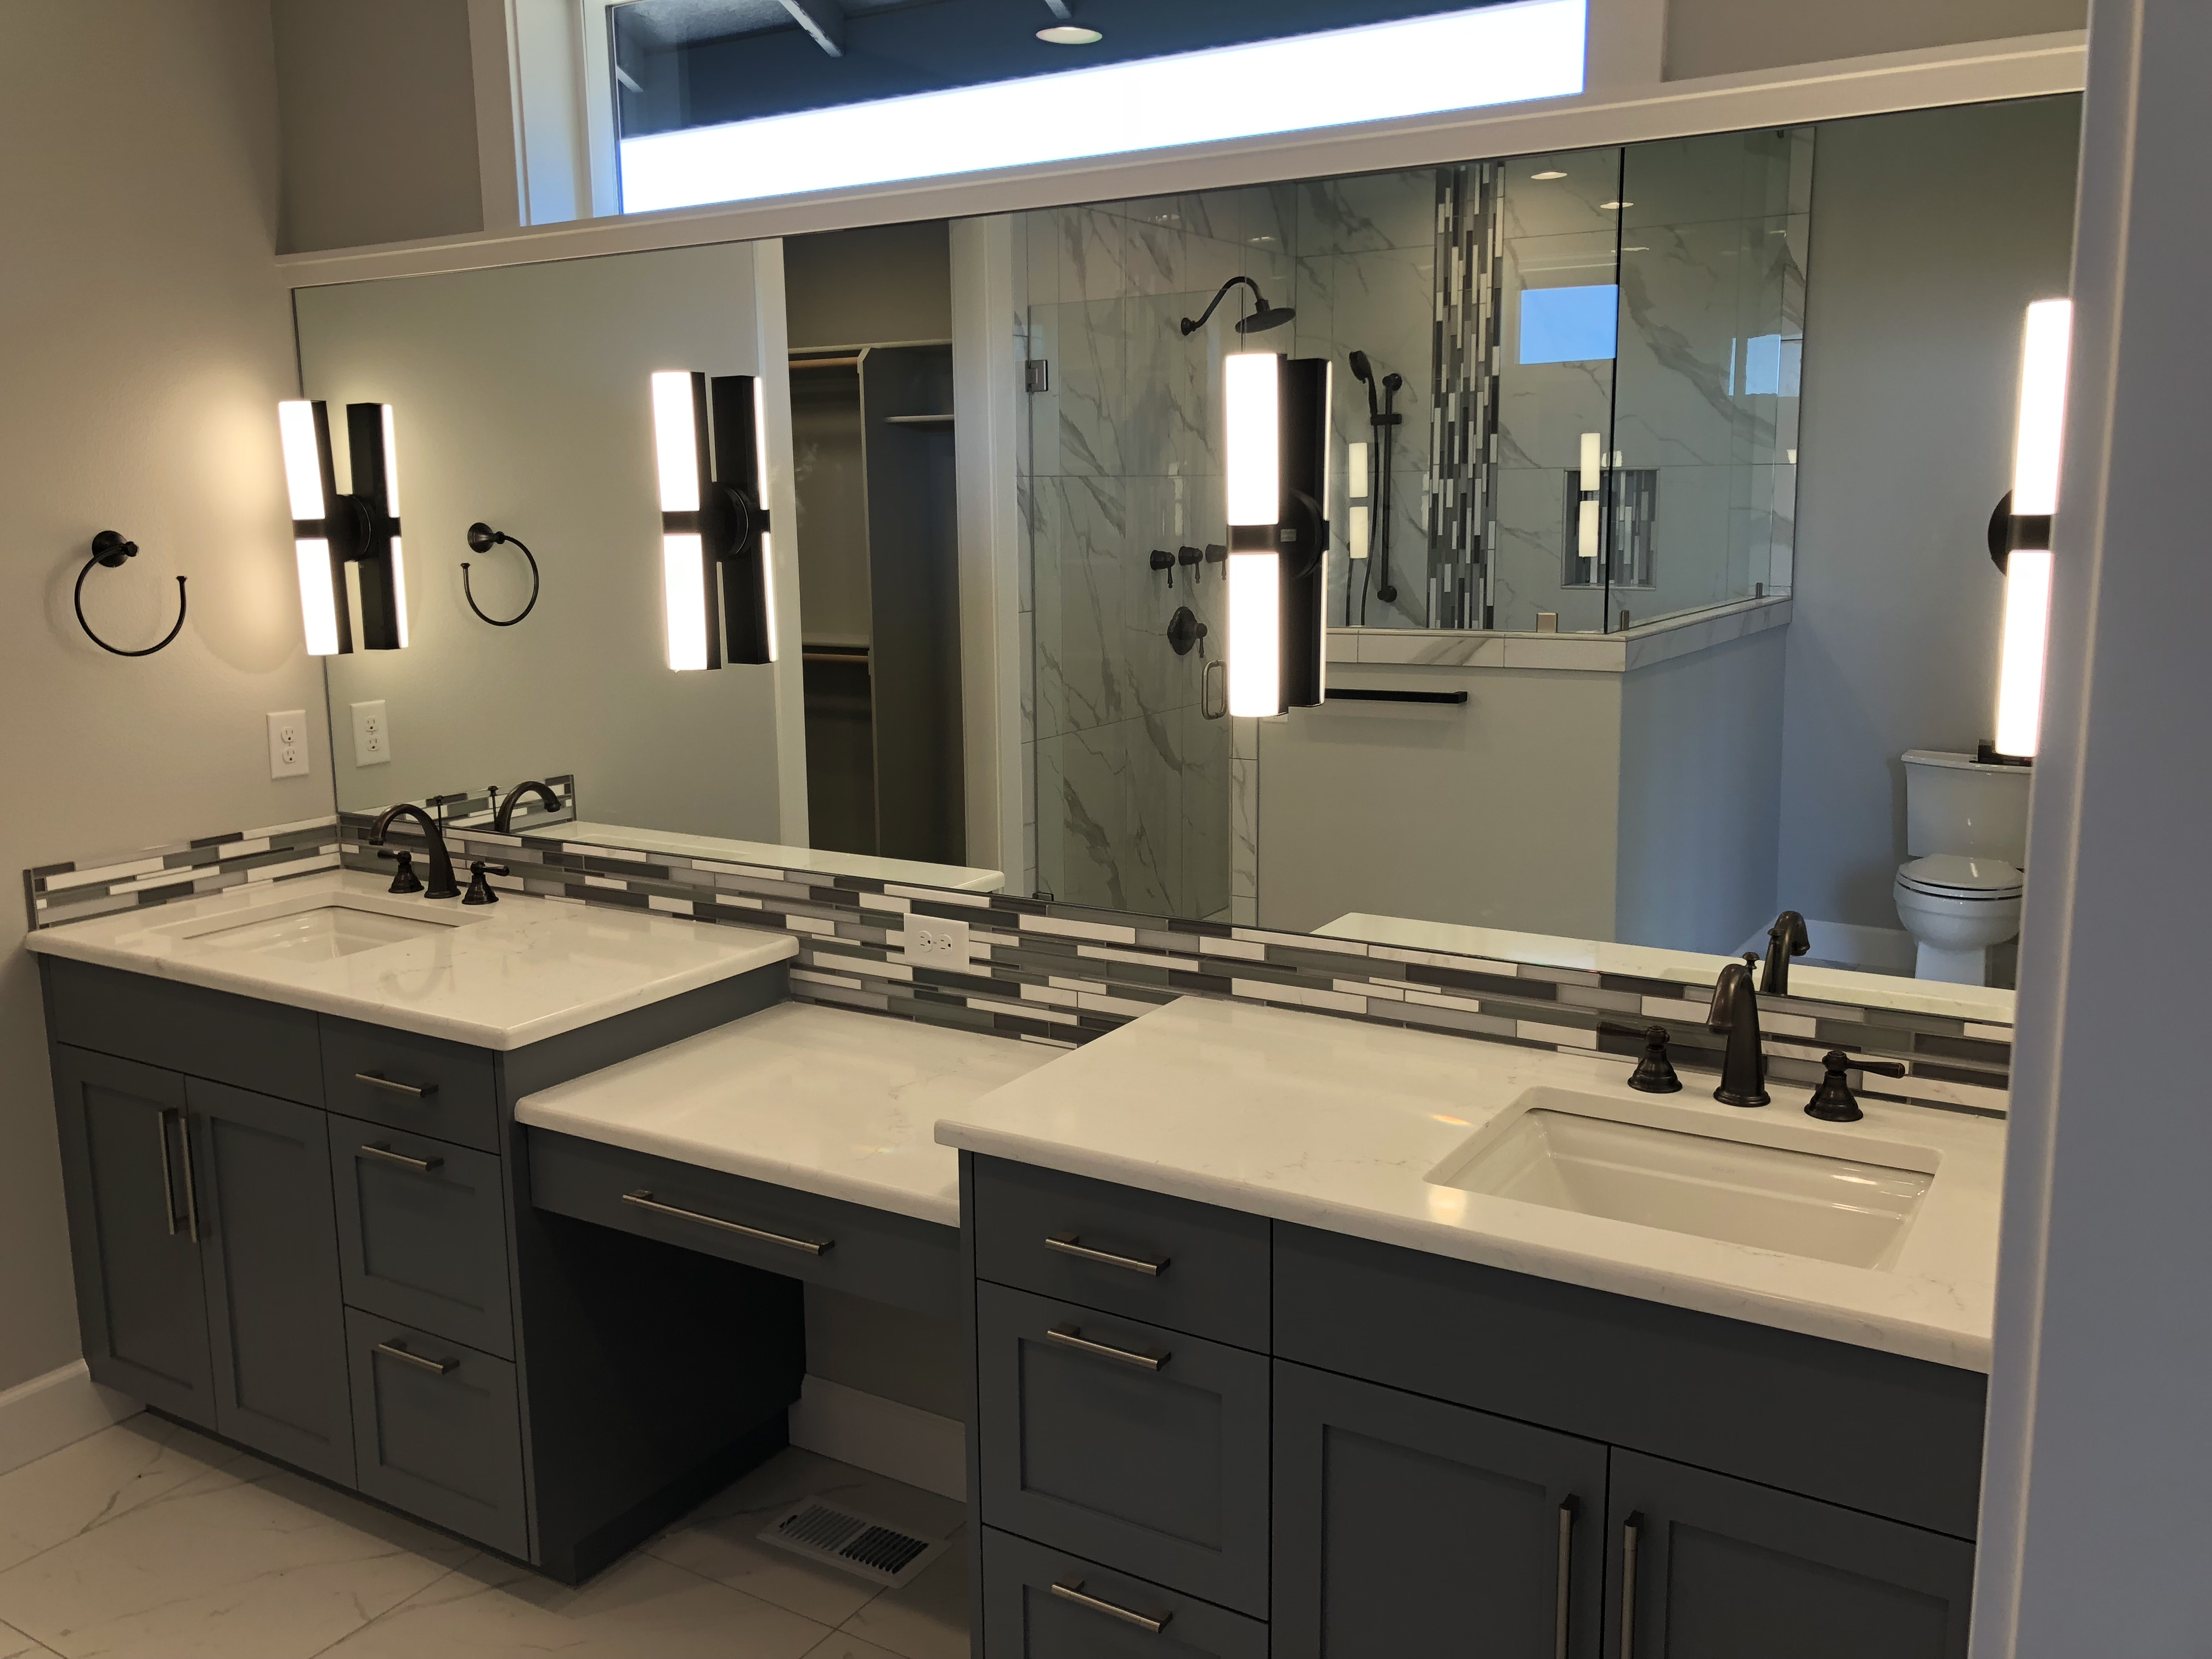 Bathroom view with cabinets front view